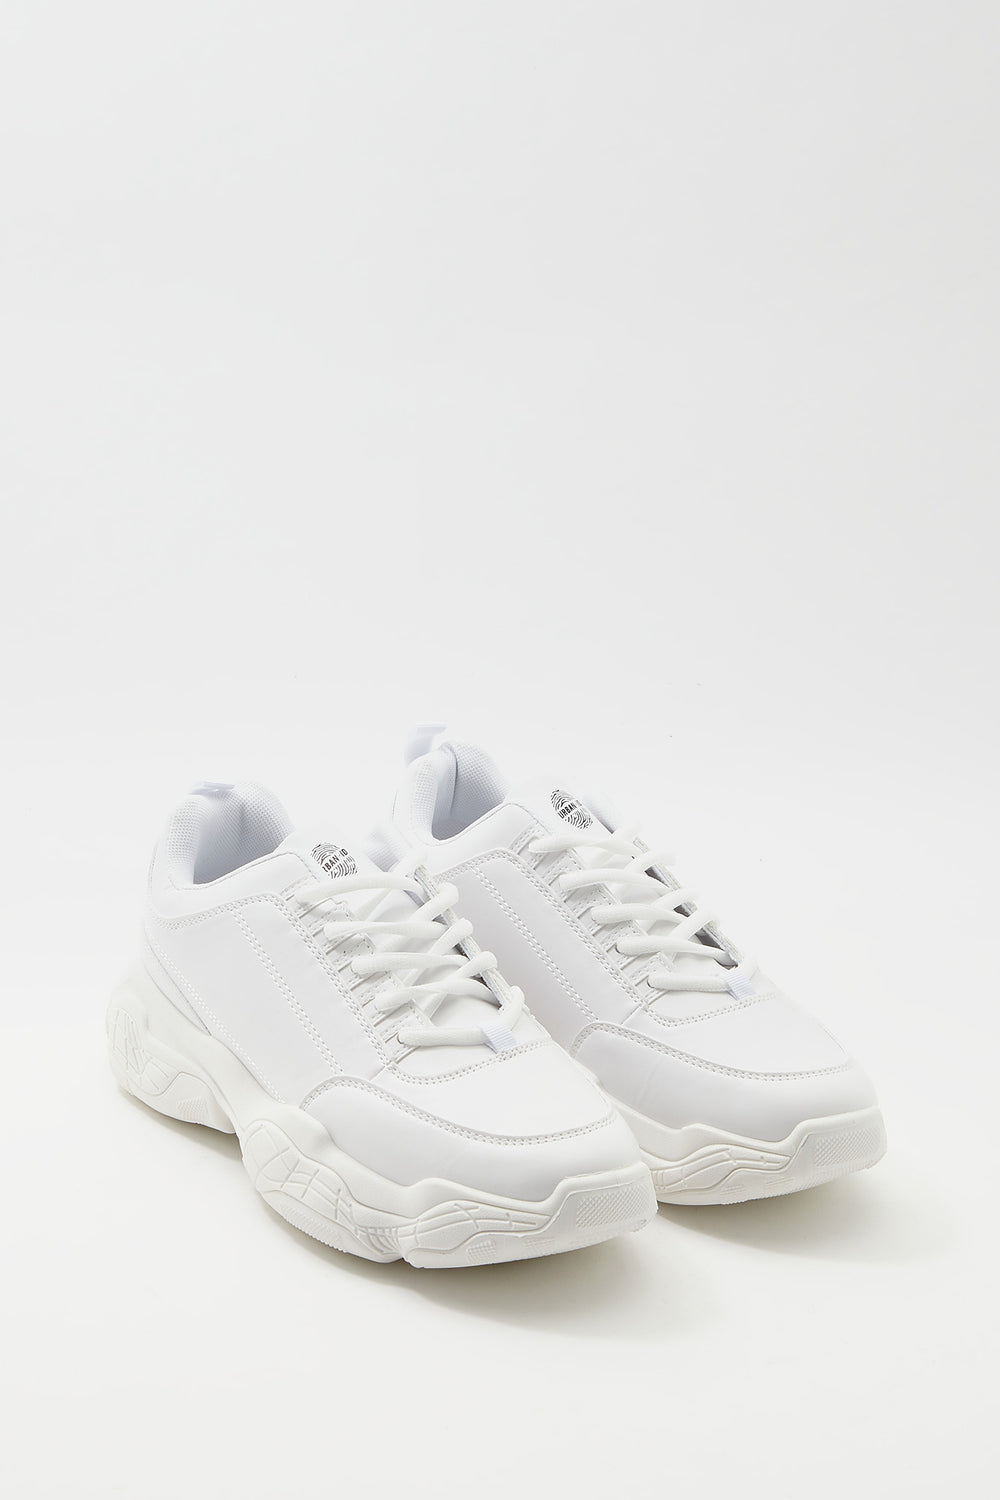 Faux-Leather Lace-Up Dad Sneaker White